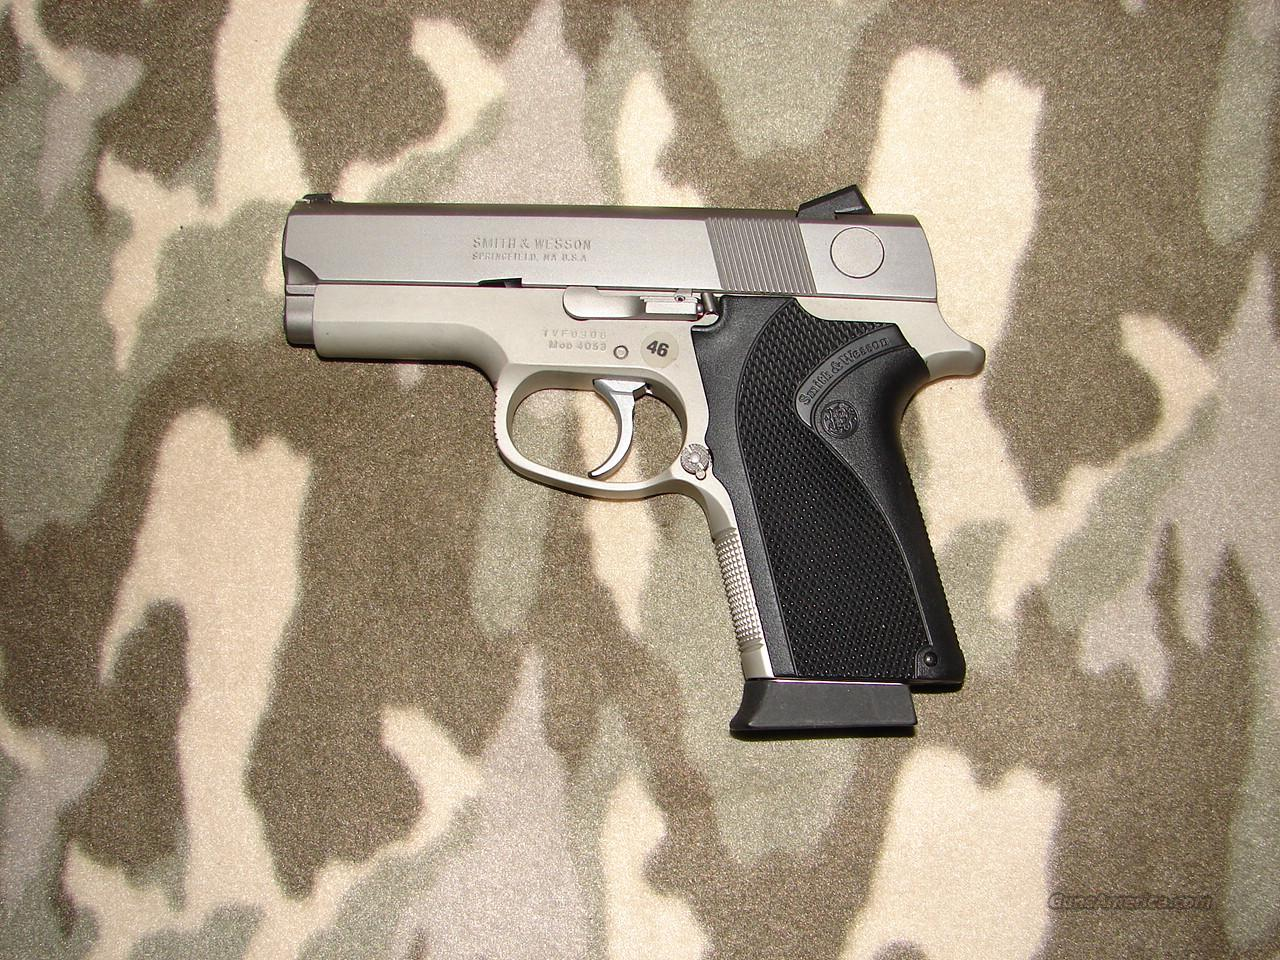 Smith & Wesson 4053   Guns > Pistols > Smith & Wesson Pistols - Autos > Alloy Frame